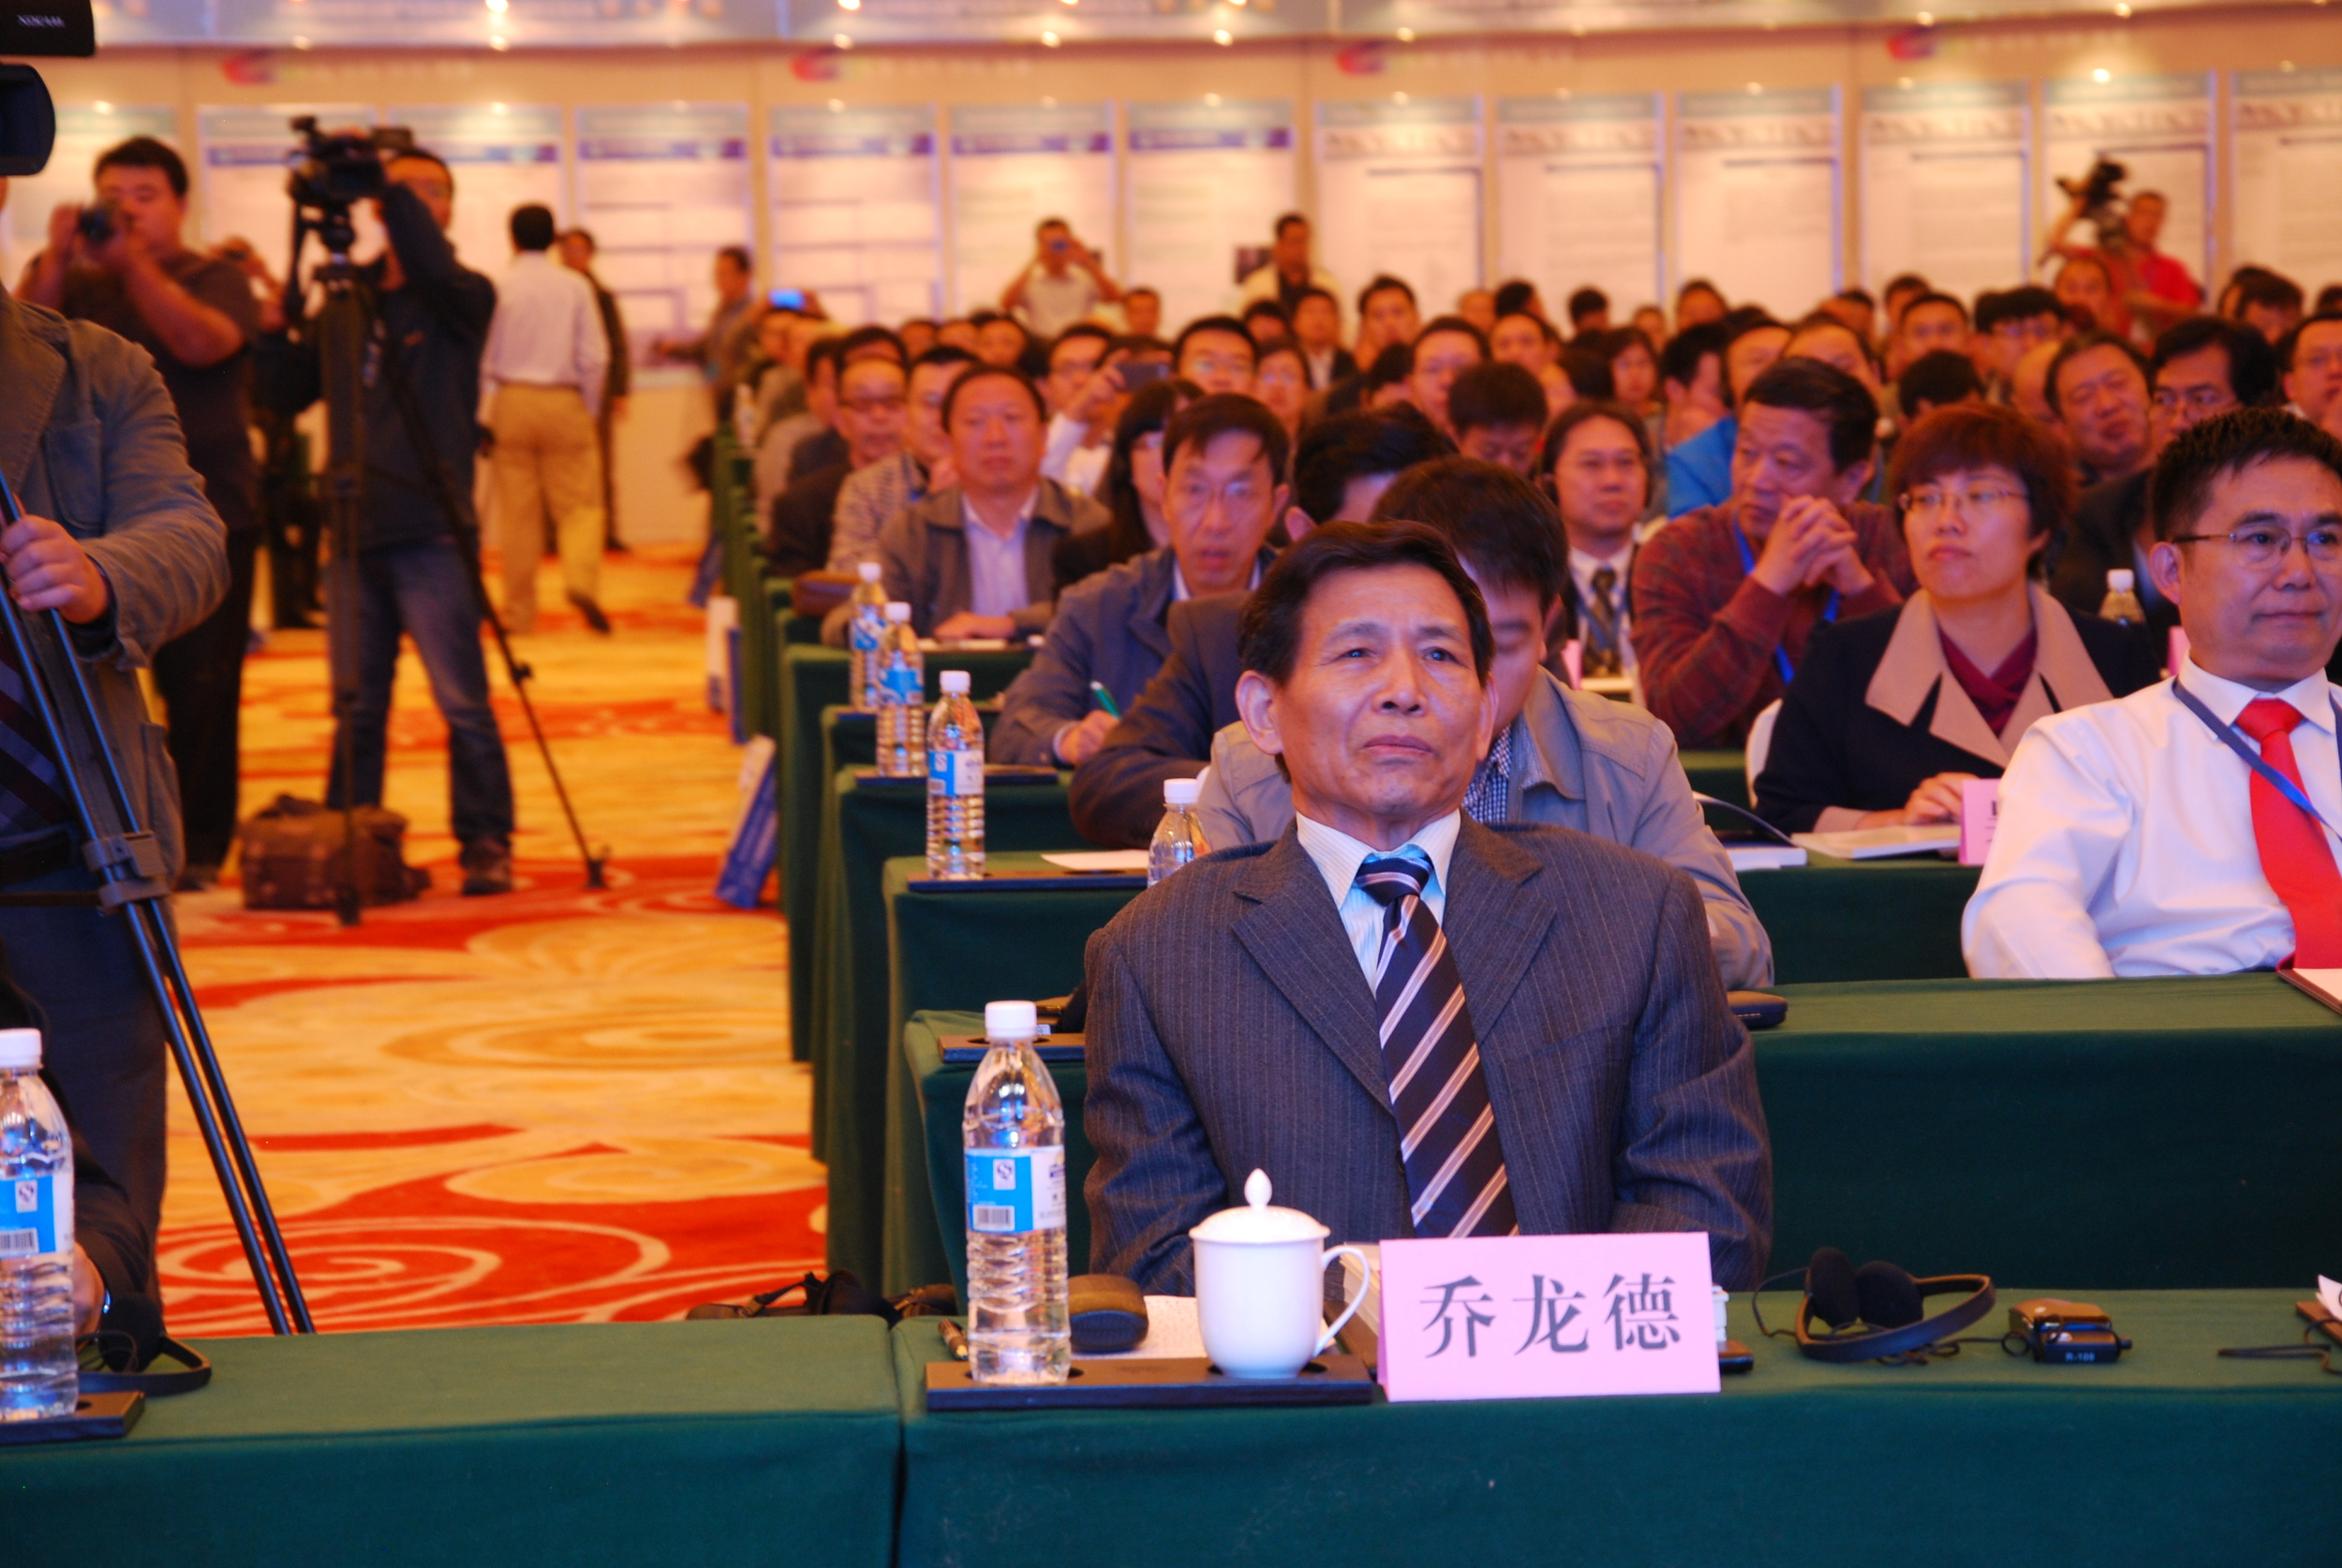 Mr. Qiao Longde (喬龍德), president of China Building Materials Federation